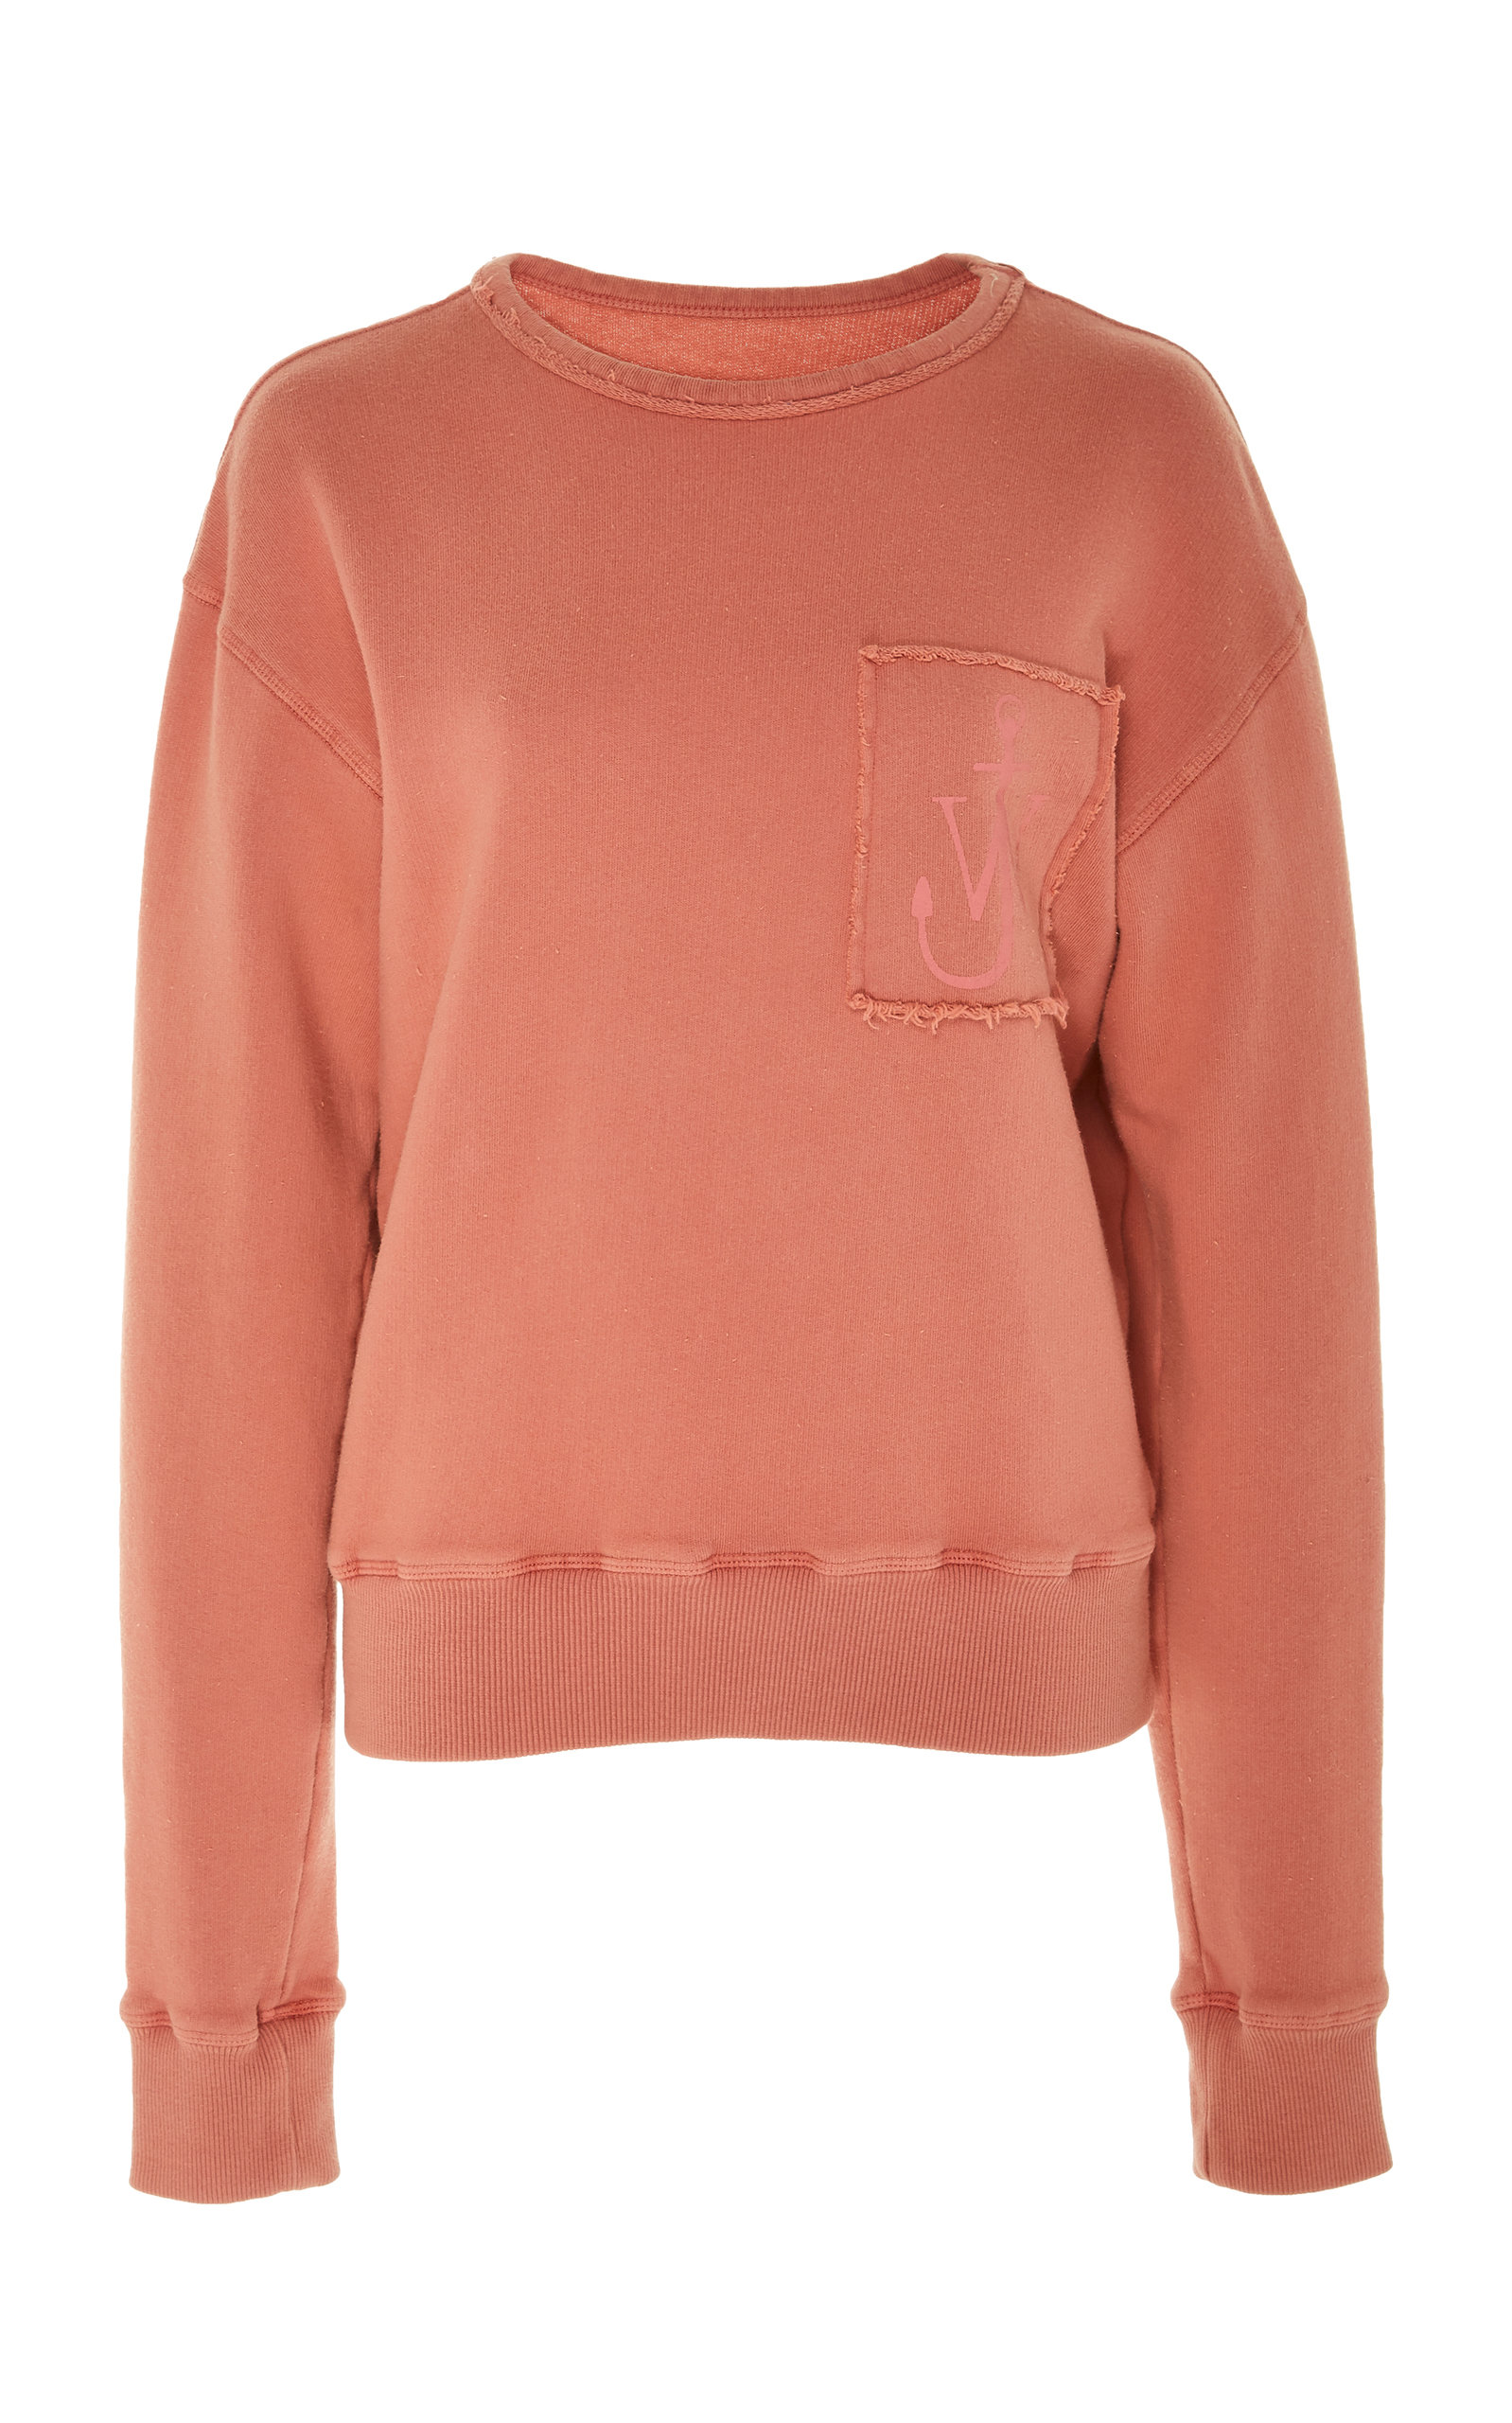 J.W. Anderson | JW Anderson Frayed Embroidered Cotton-Jersey Sweatshirt | Clouty